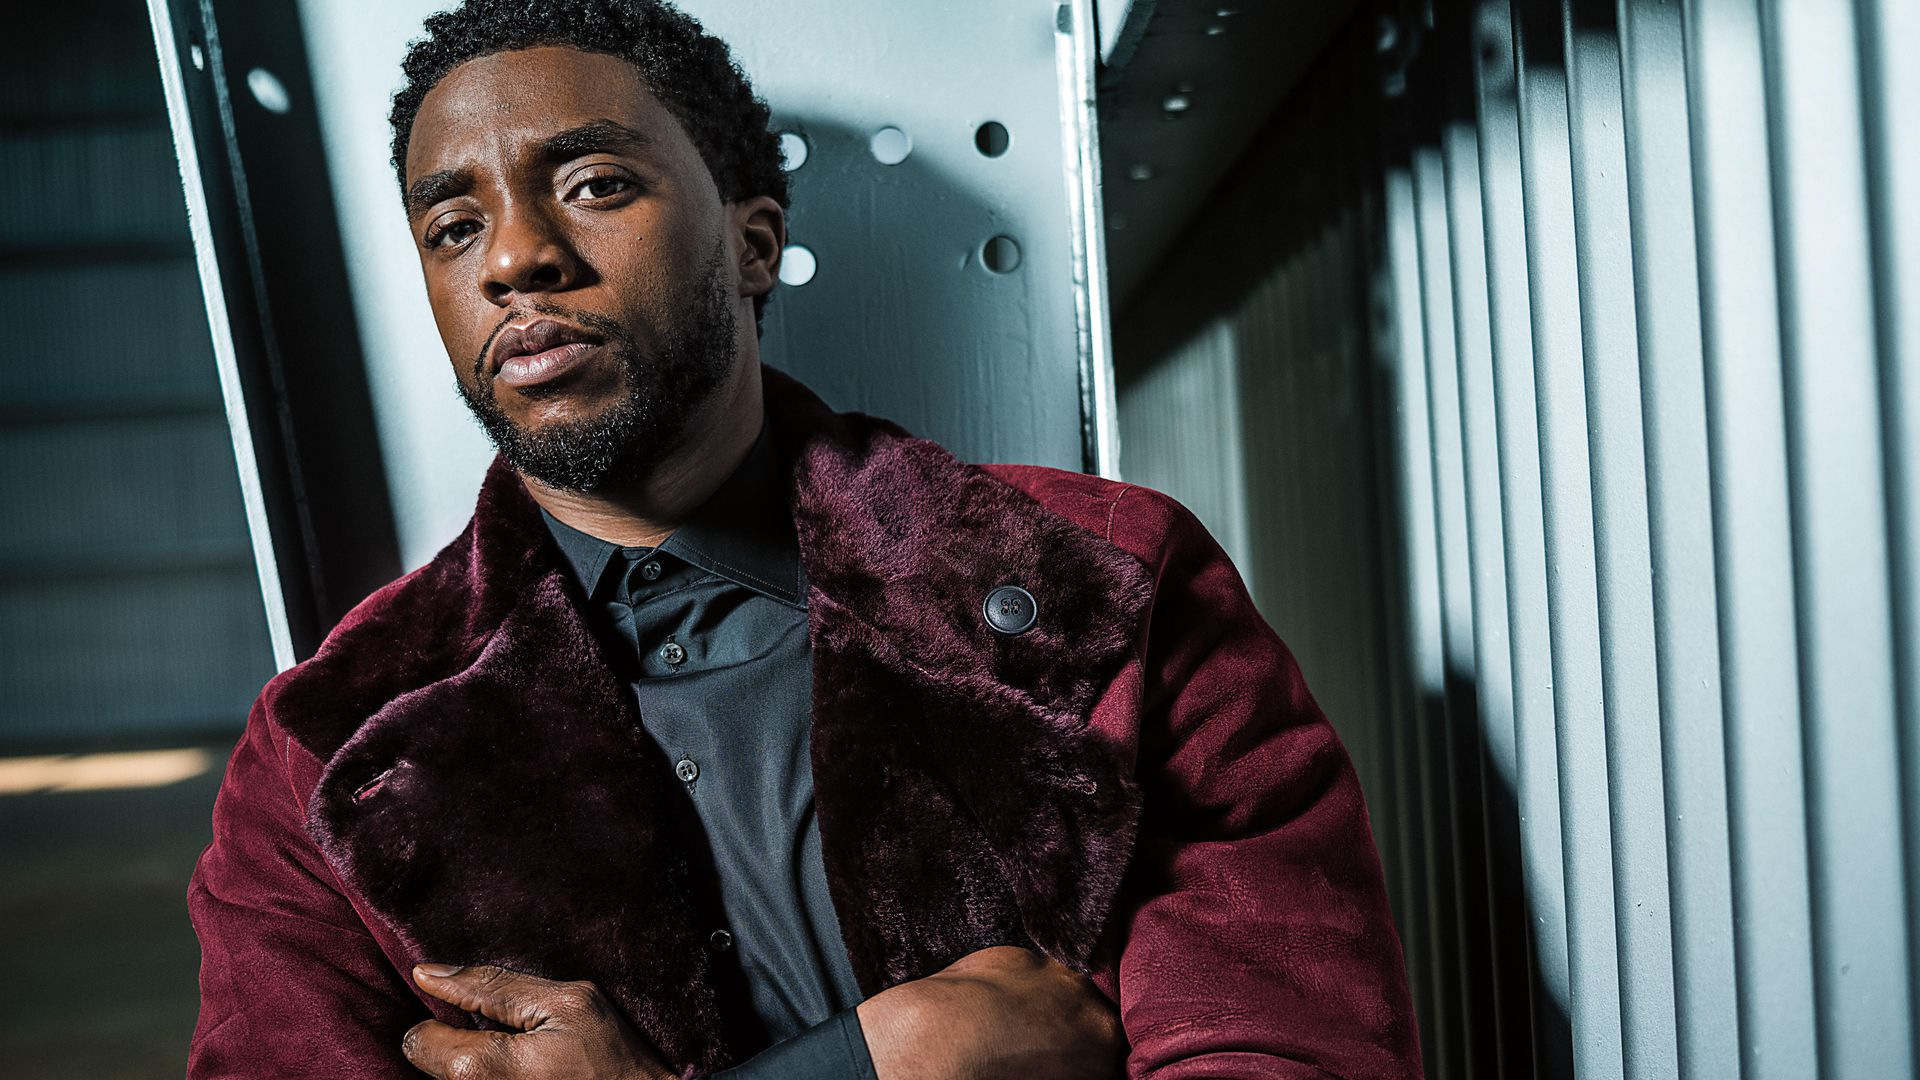 Chadwick Boseman Howard Alum And Movie Star Dead At 43 Hbcu Gameday